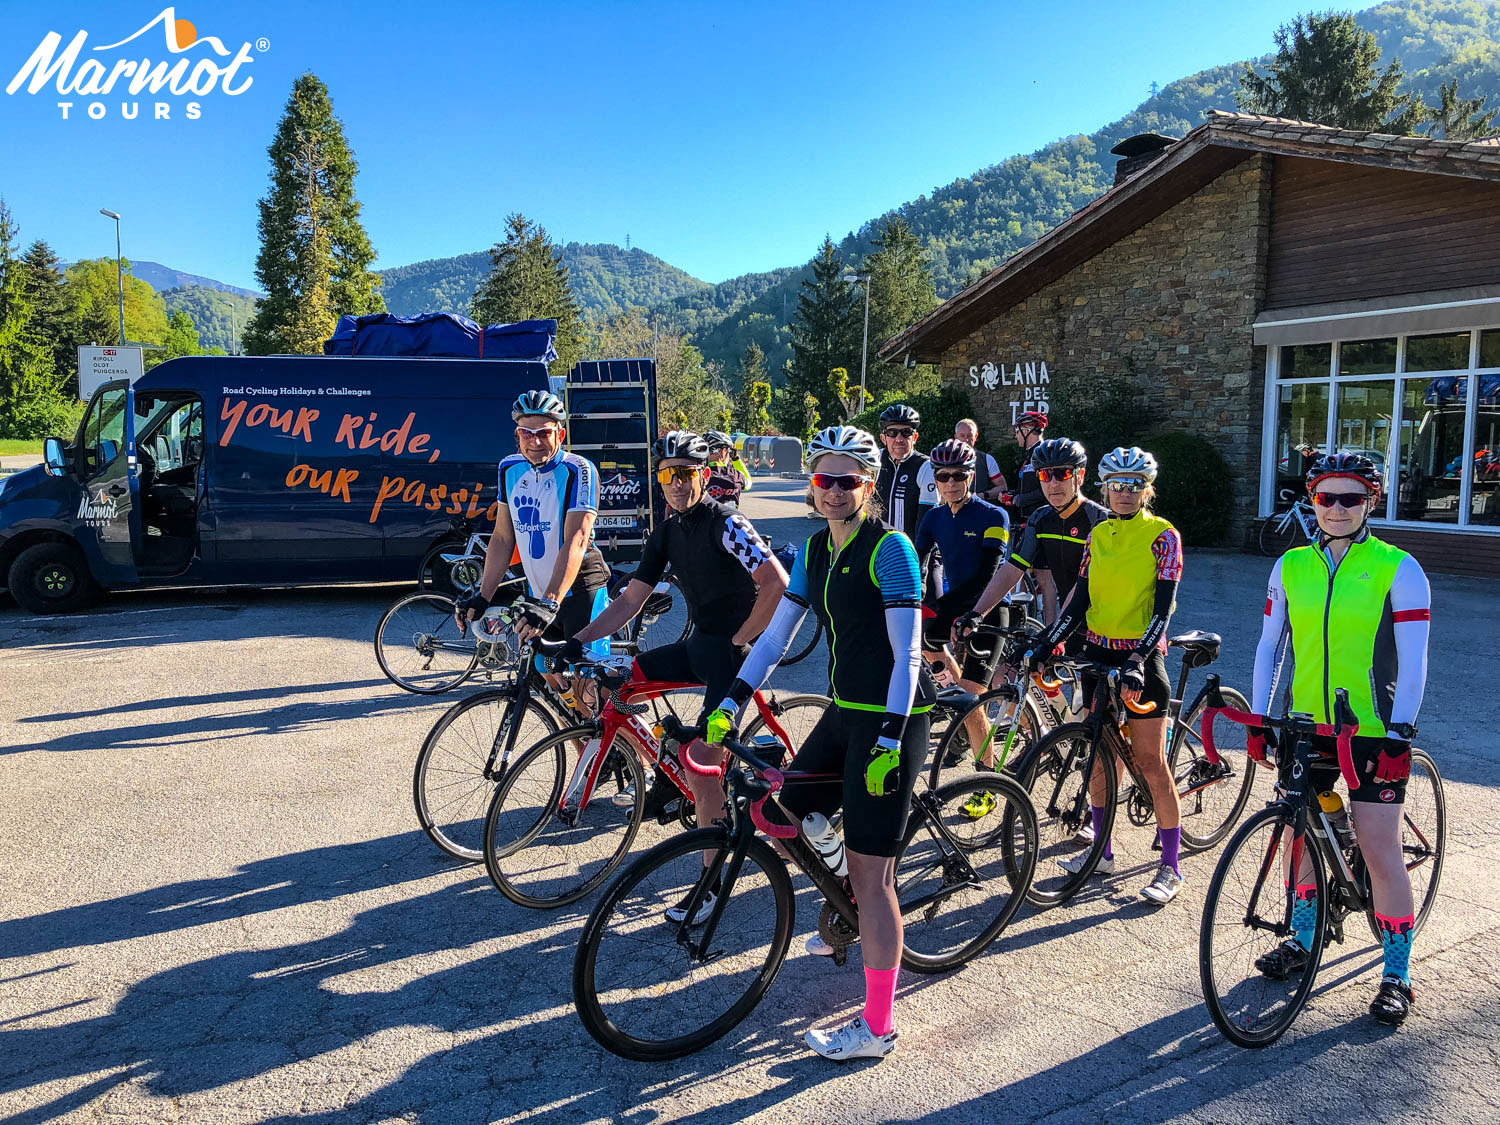 Group of cyclists on Marmot Tours road cycling holiday in Catalonia